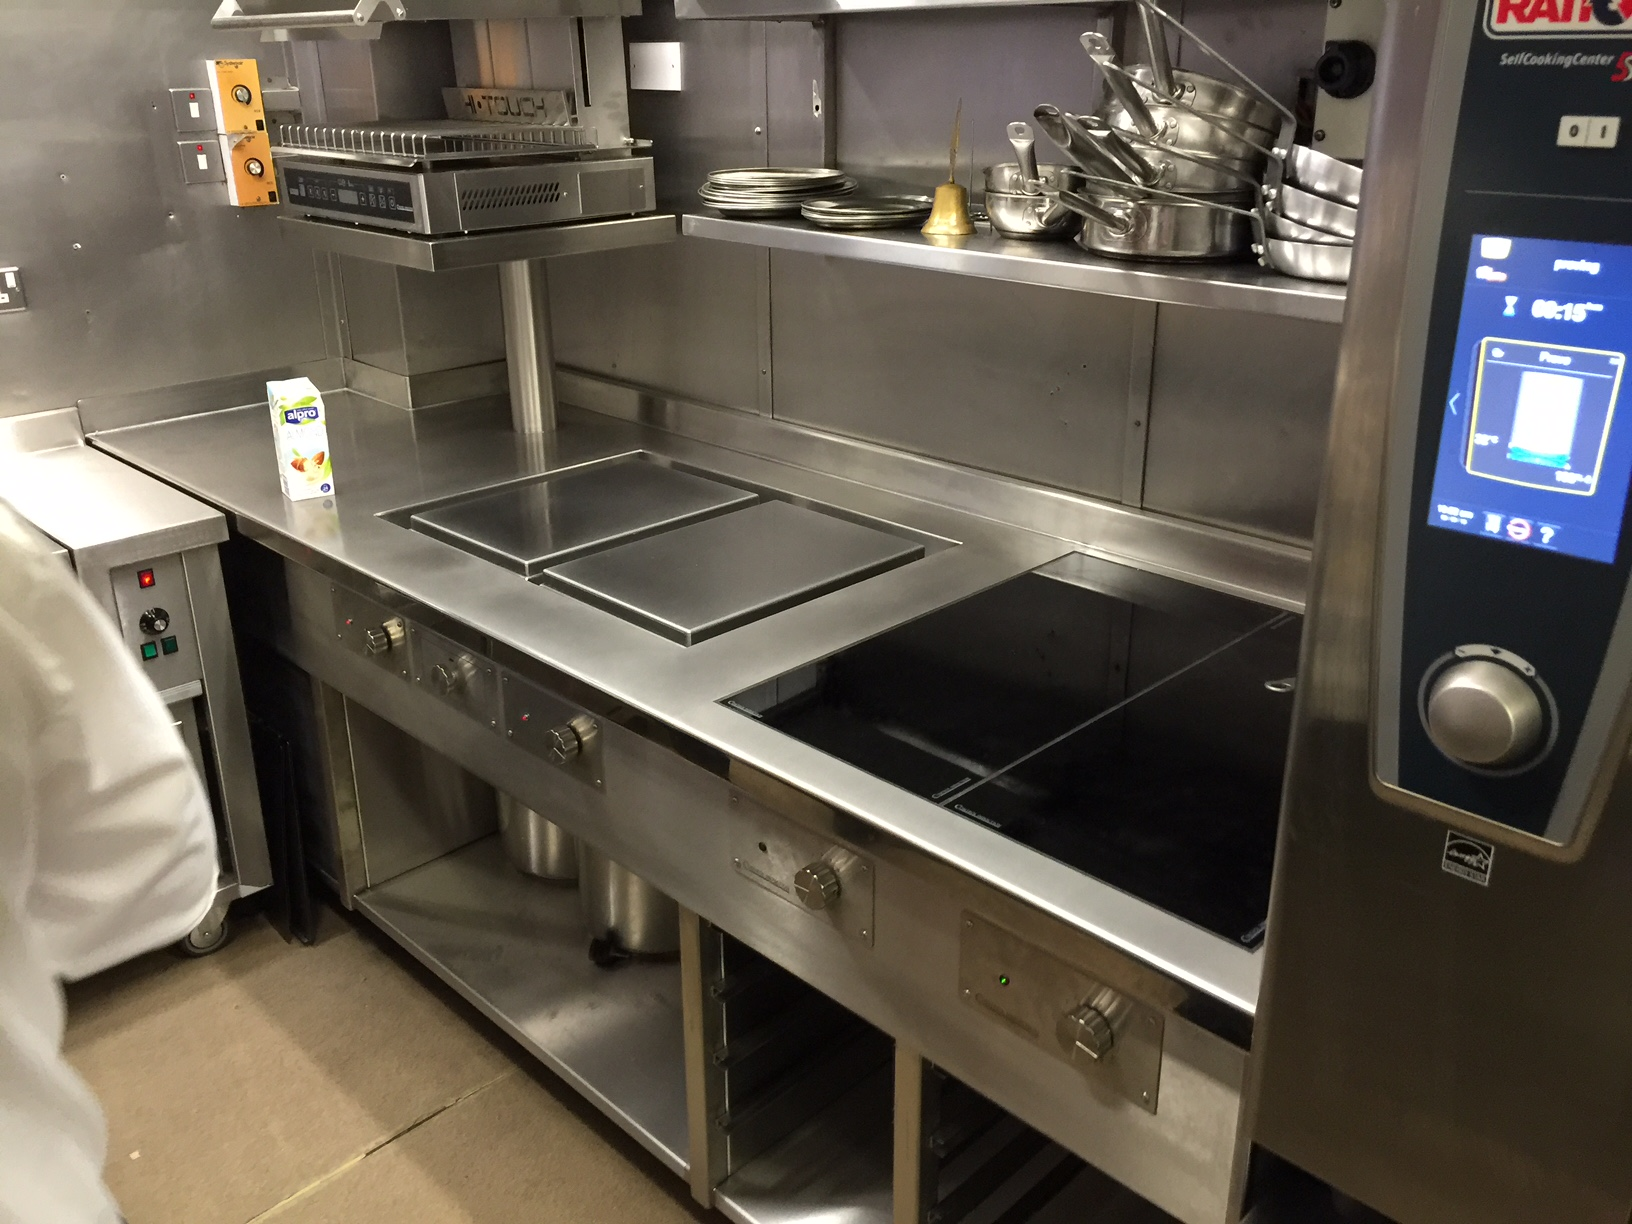 Finished induction cooking suite next to combi oven